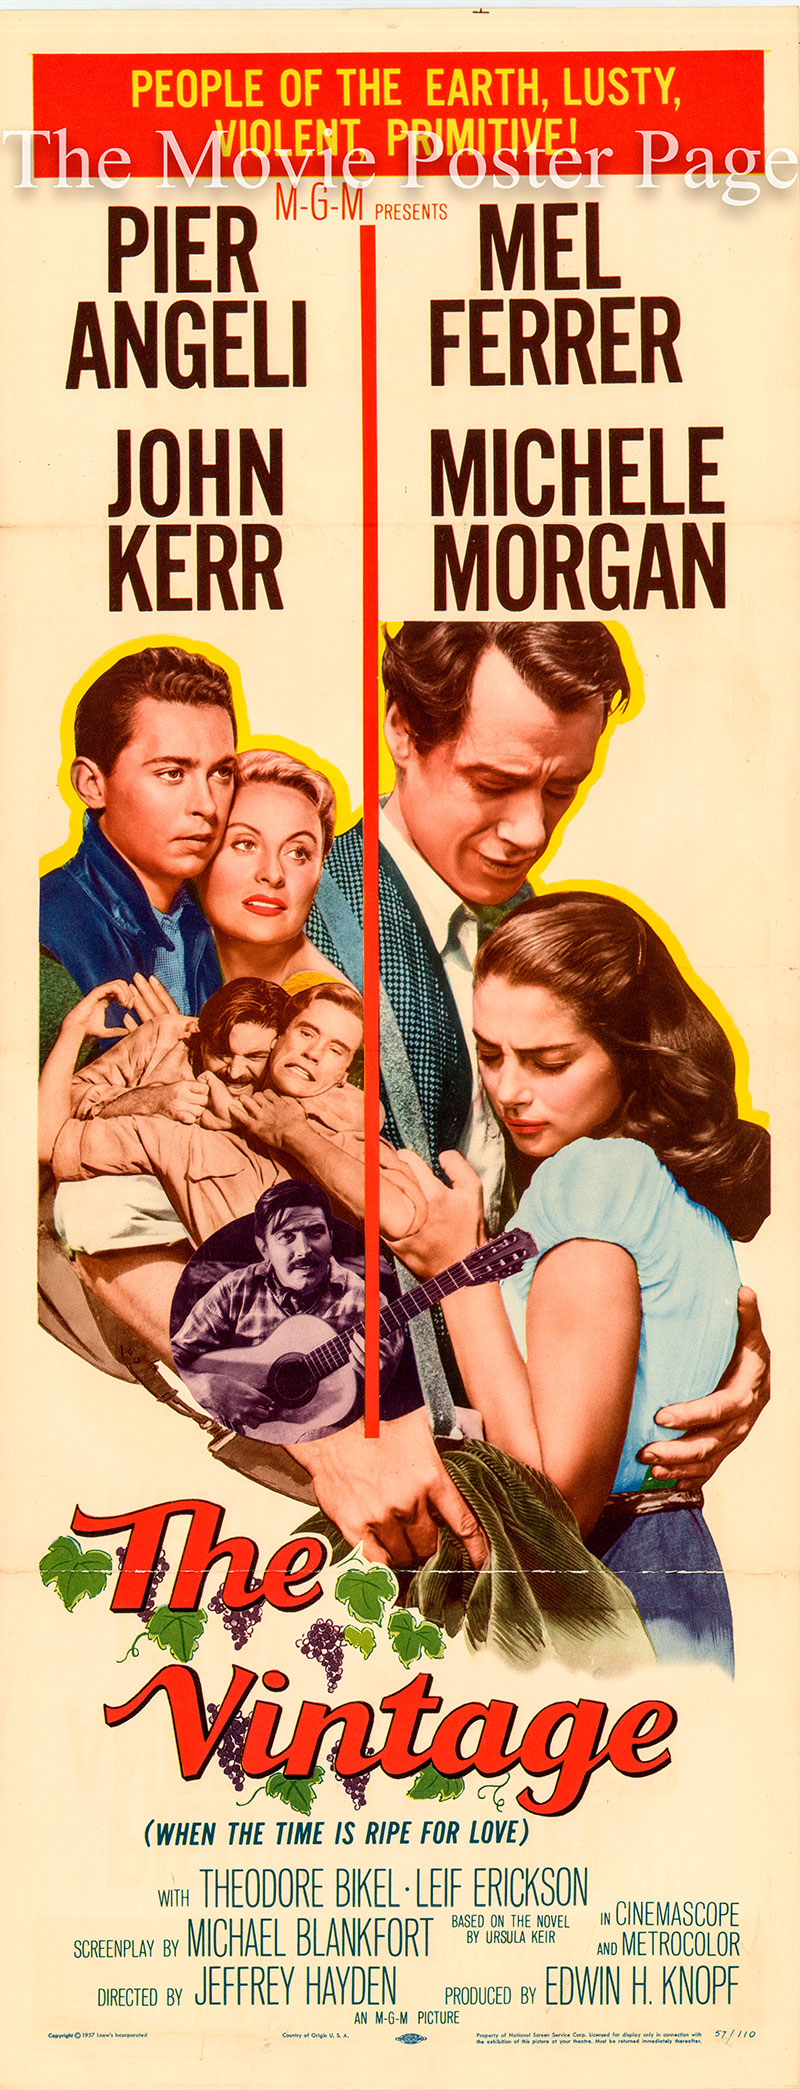 Pictured is a US insert promotional poster for the 1957 Jeffrey Hayden film The Vintage starring Pier Angeli and Mel Ferrer.